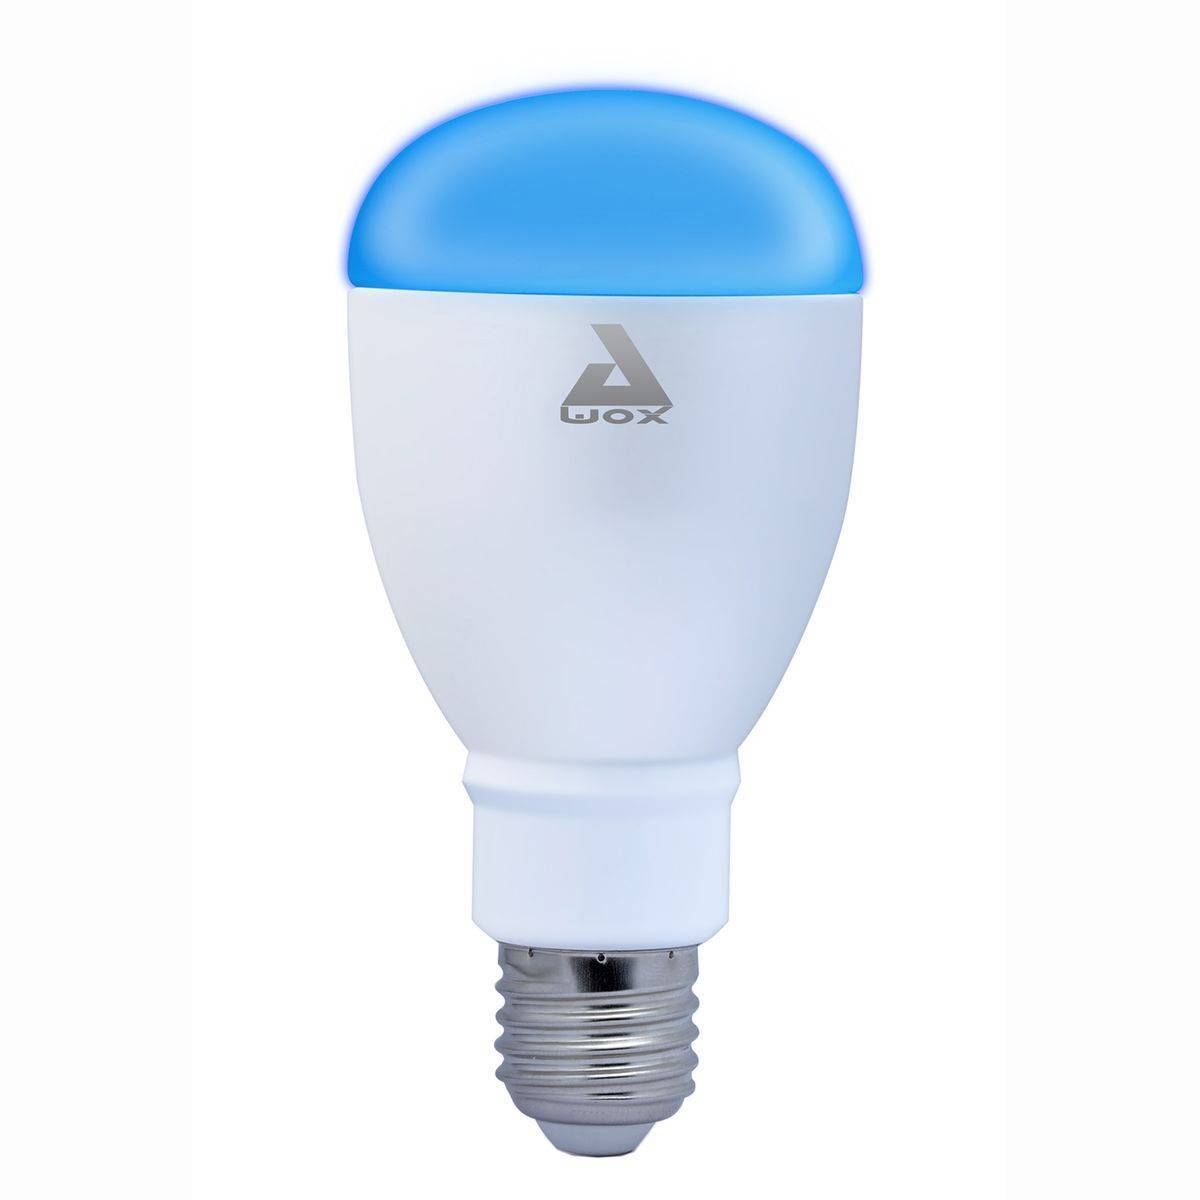 AWOX Ampoule SML-c9 SmartLIGHT Color - AWOX